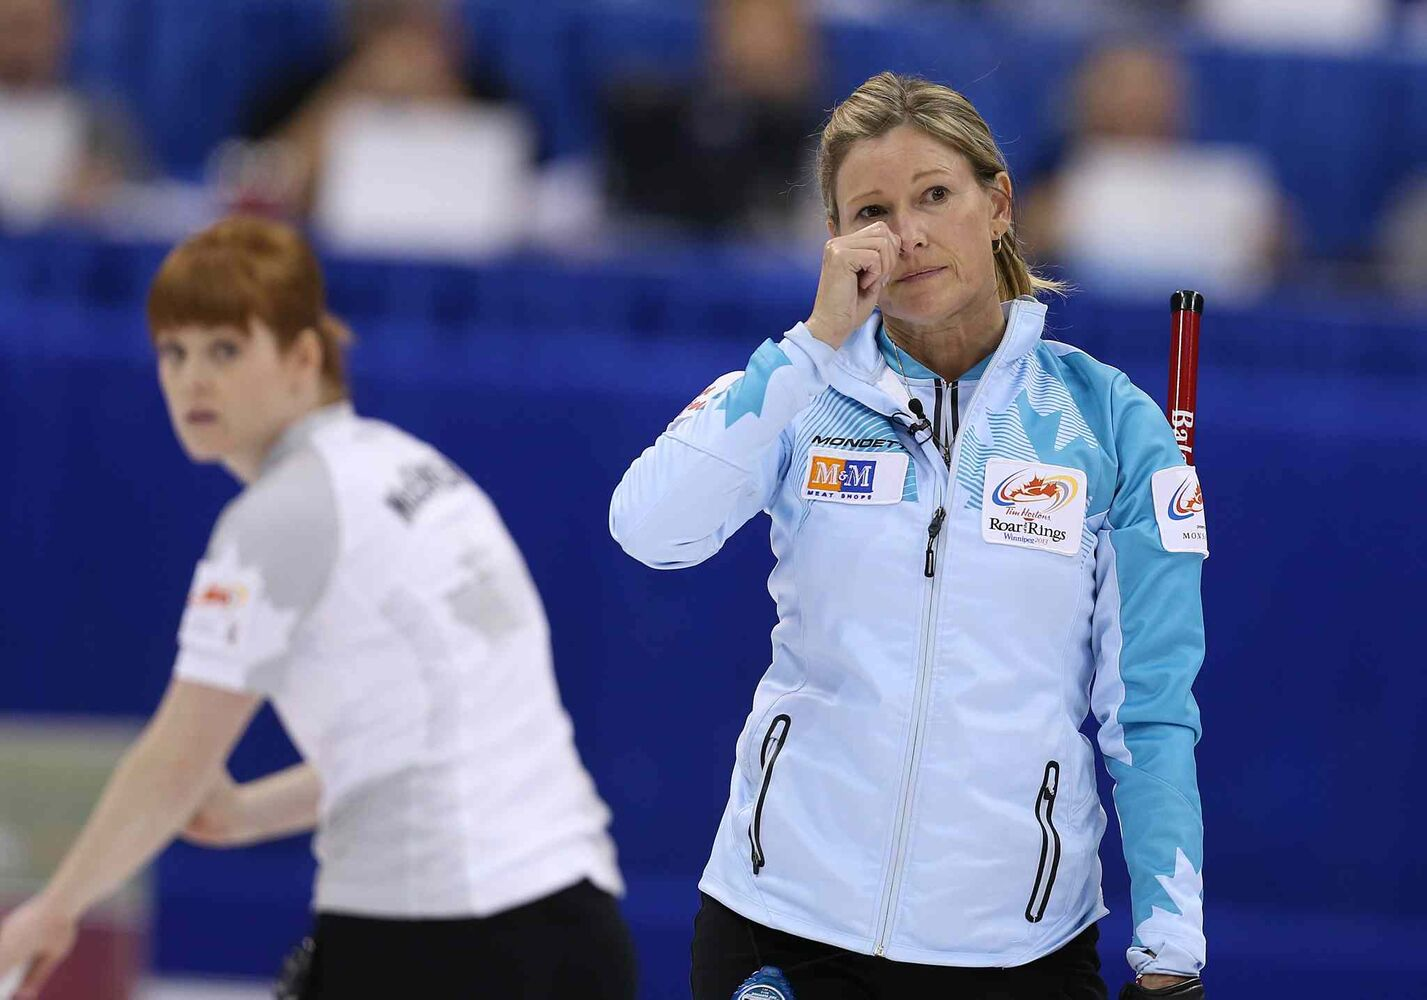 Skip Sherry Middaugh  reacts to a shot during action against Jennifer Jones in the women���s final of Roar of the Rings curling at the MTS Centre on Sat., Dec. 7, 2013. Photo by Jason Halstead/Winnipeg Free Press (Jason Halstead / Winnipeg Free Press)